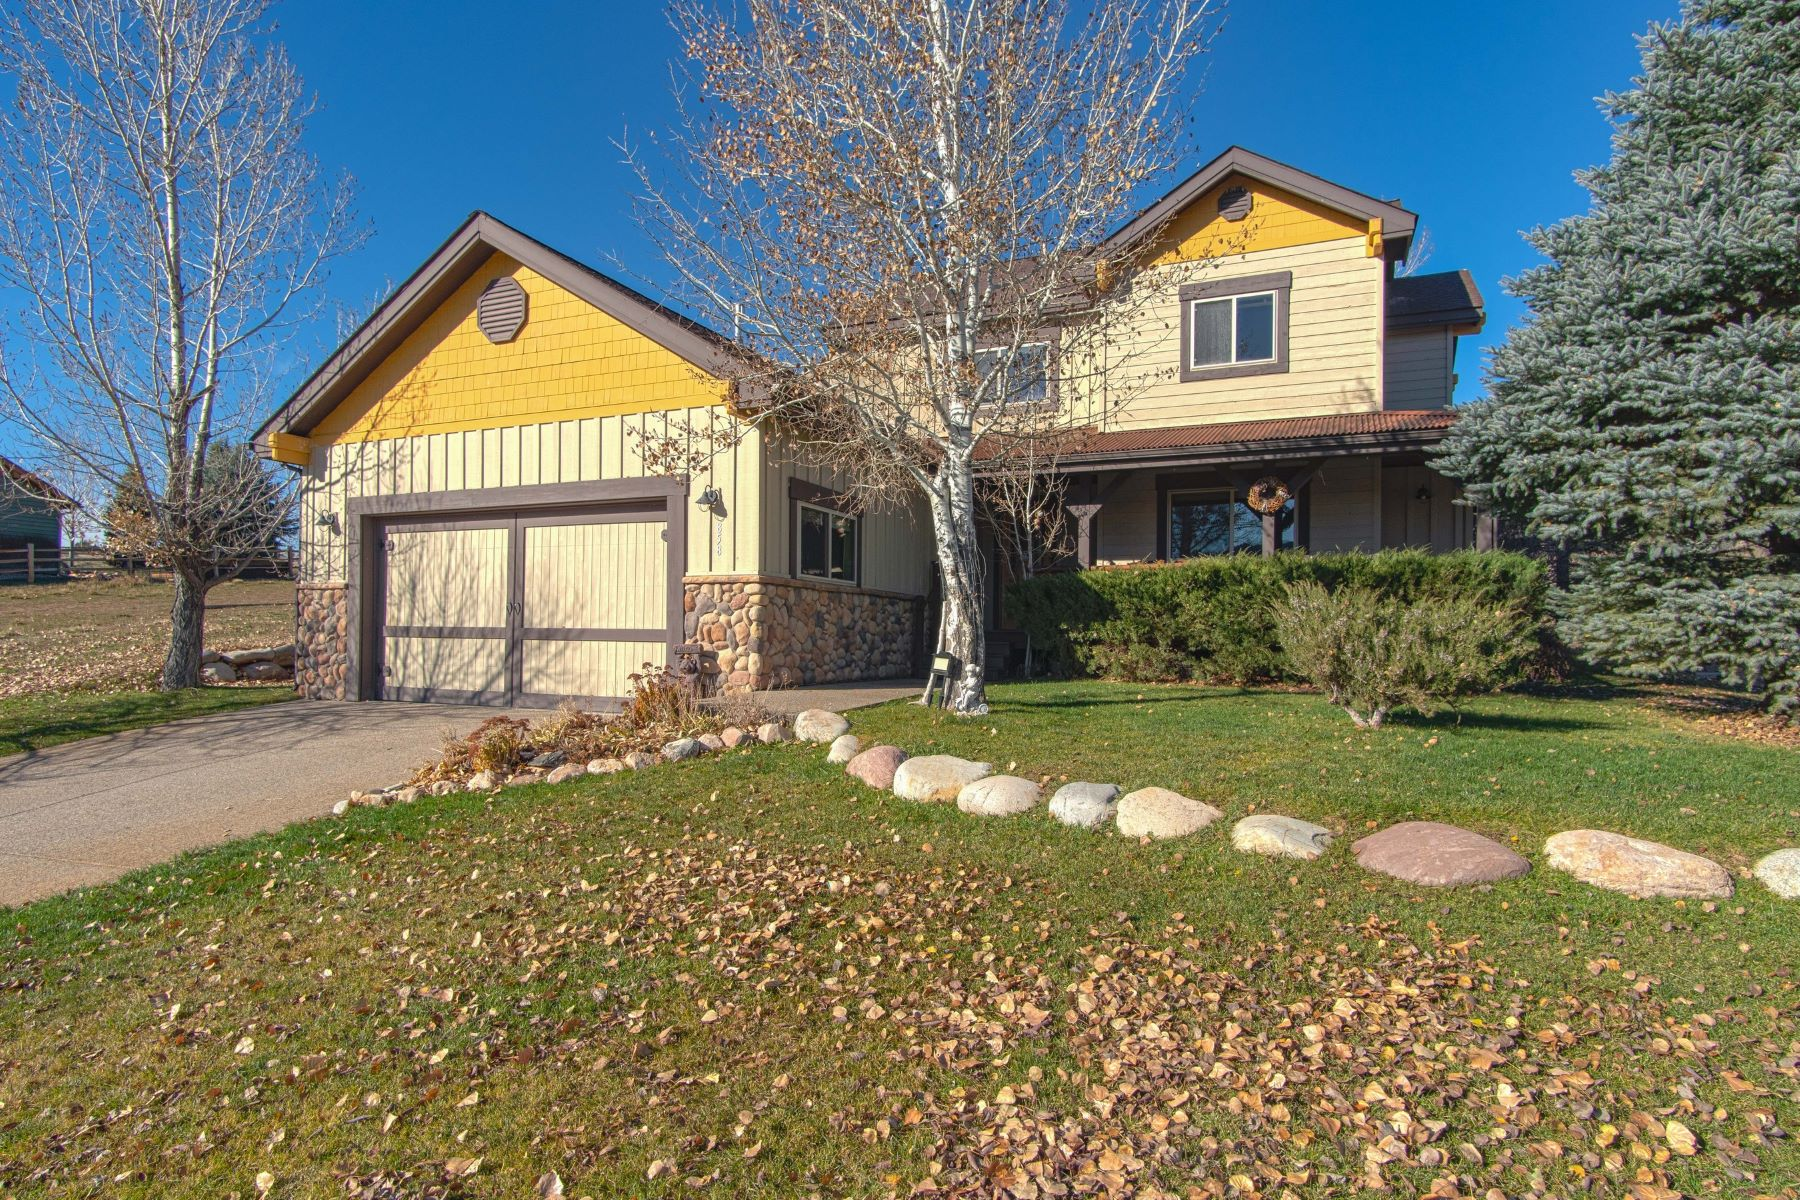 Single Family Home for Active at Well Maintained Home Backs to Open Space 858 Ute Circle New Castle, Colorado 81647 United States